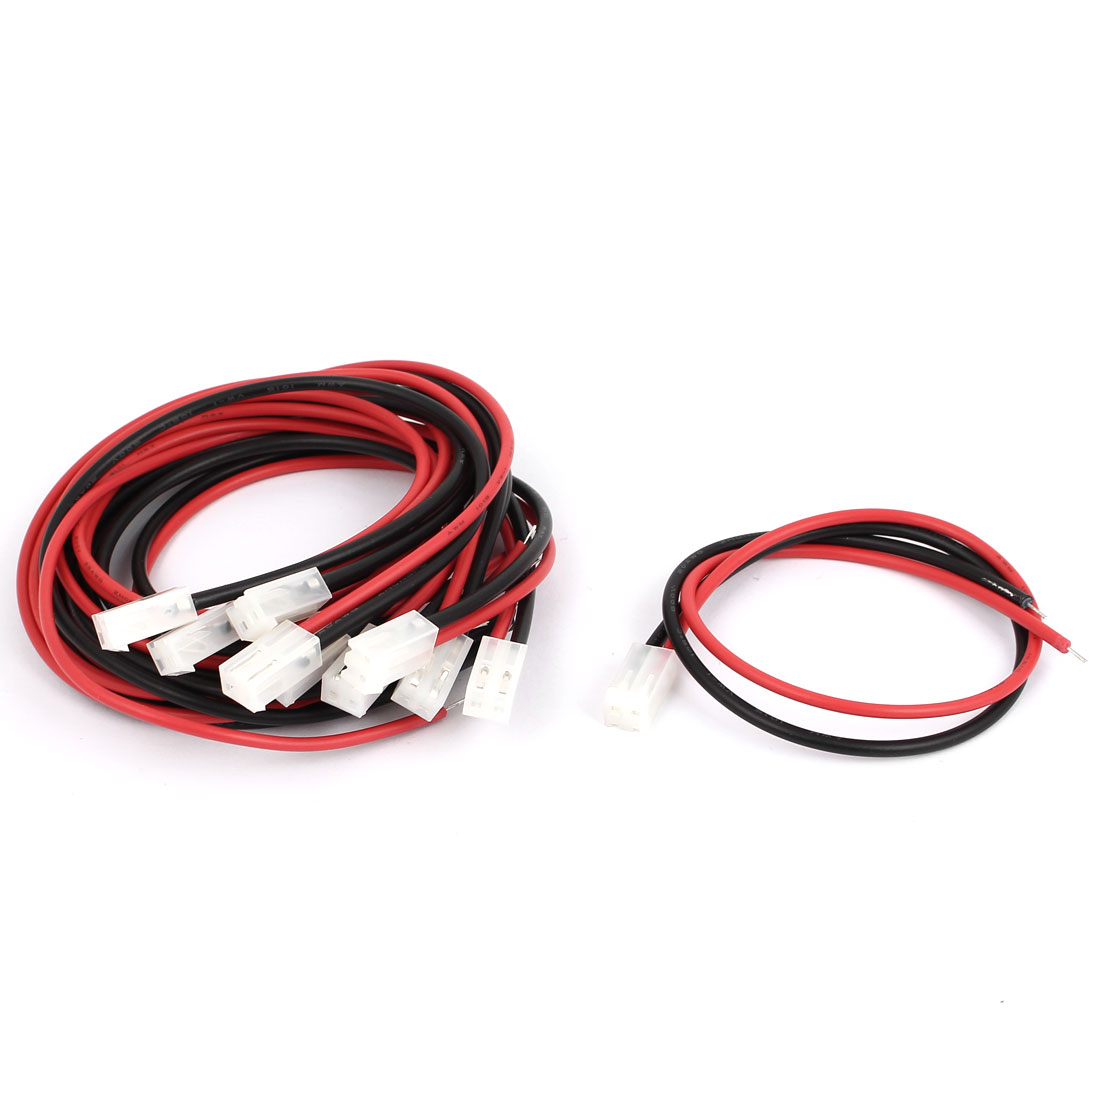 VH-2P 3.96mm Pitch Female Connector Header Wire Line 300mm 10pcs